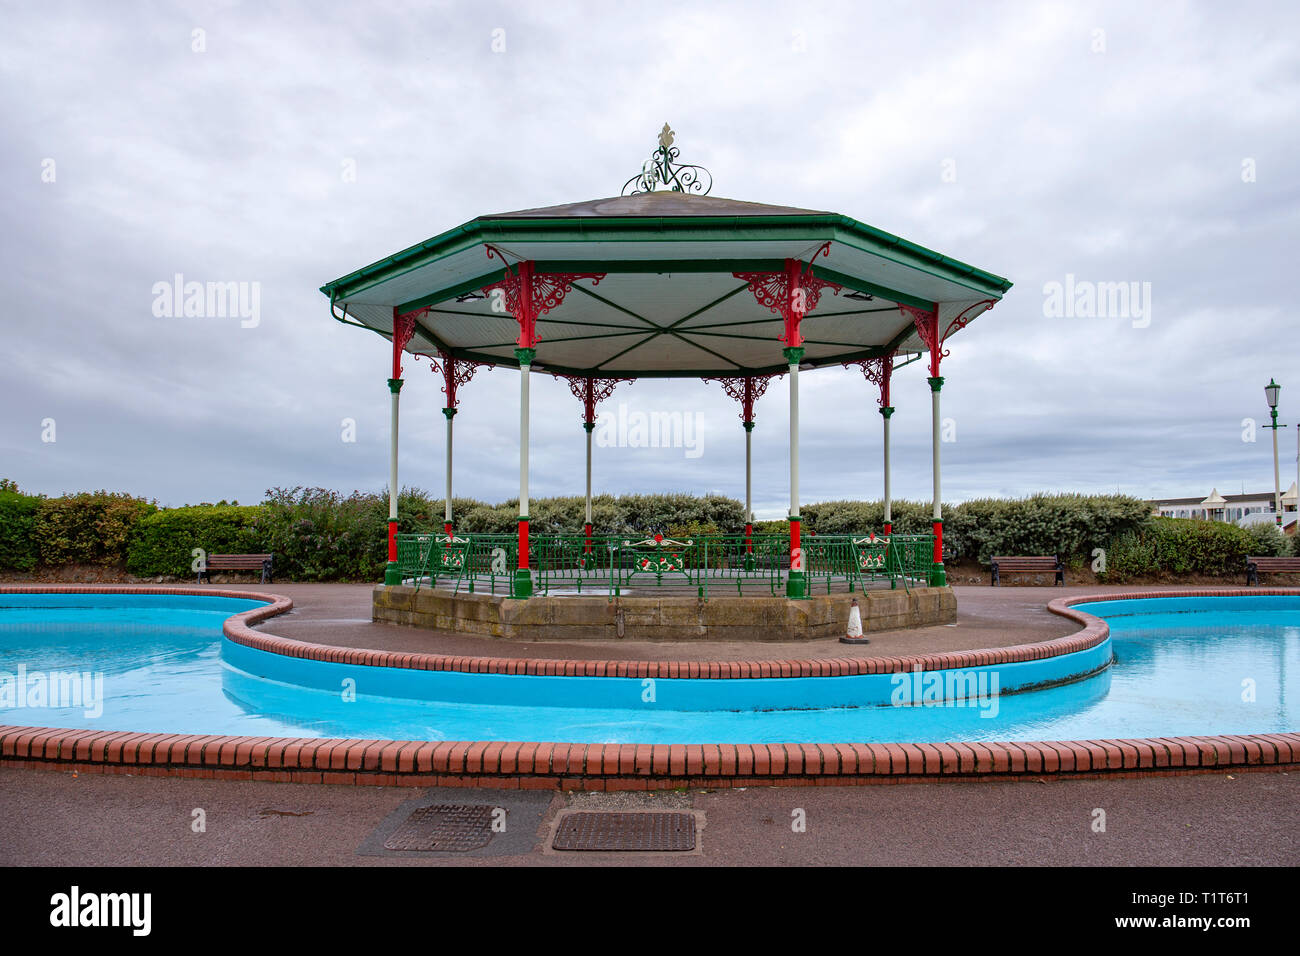 Paddling pool with bandstand on the promenade in Lytham St Annes Lancashire UK - Stock Image